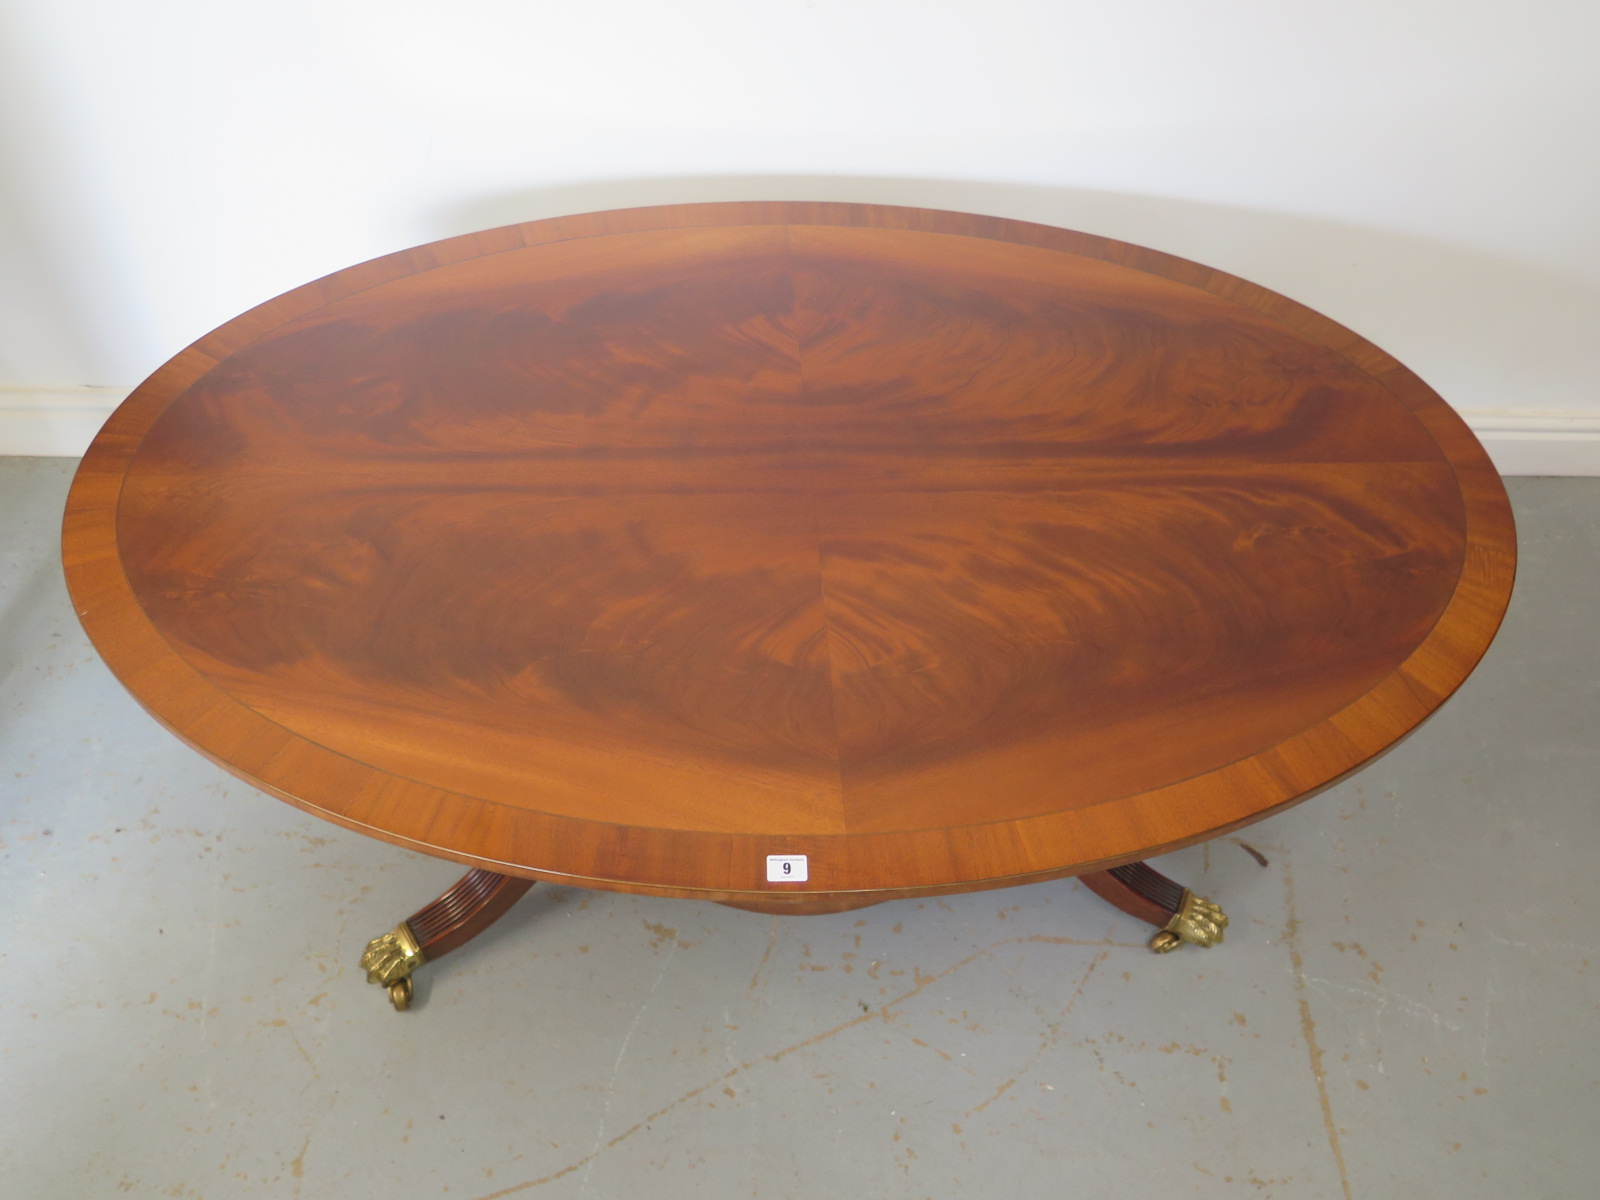 Lot 9 - A modern mahogany veneered oval coffee table on four outswept legs with brass casters - 142cm long x